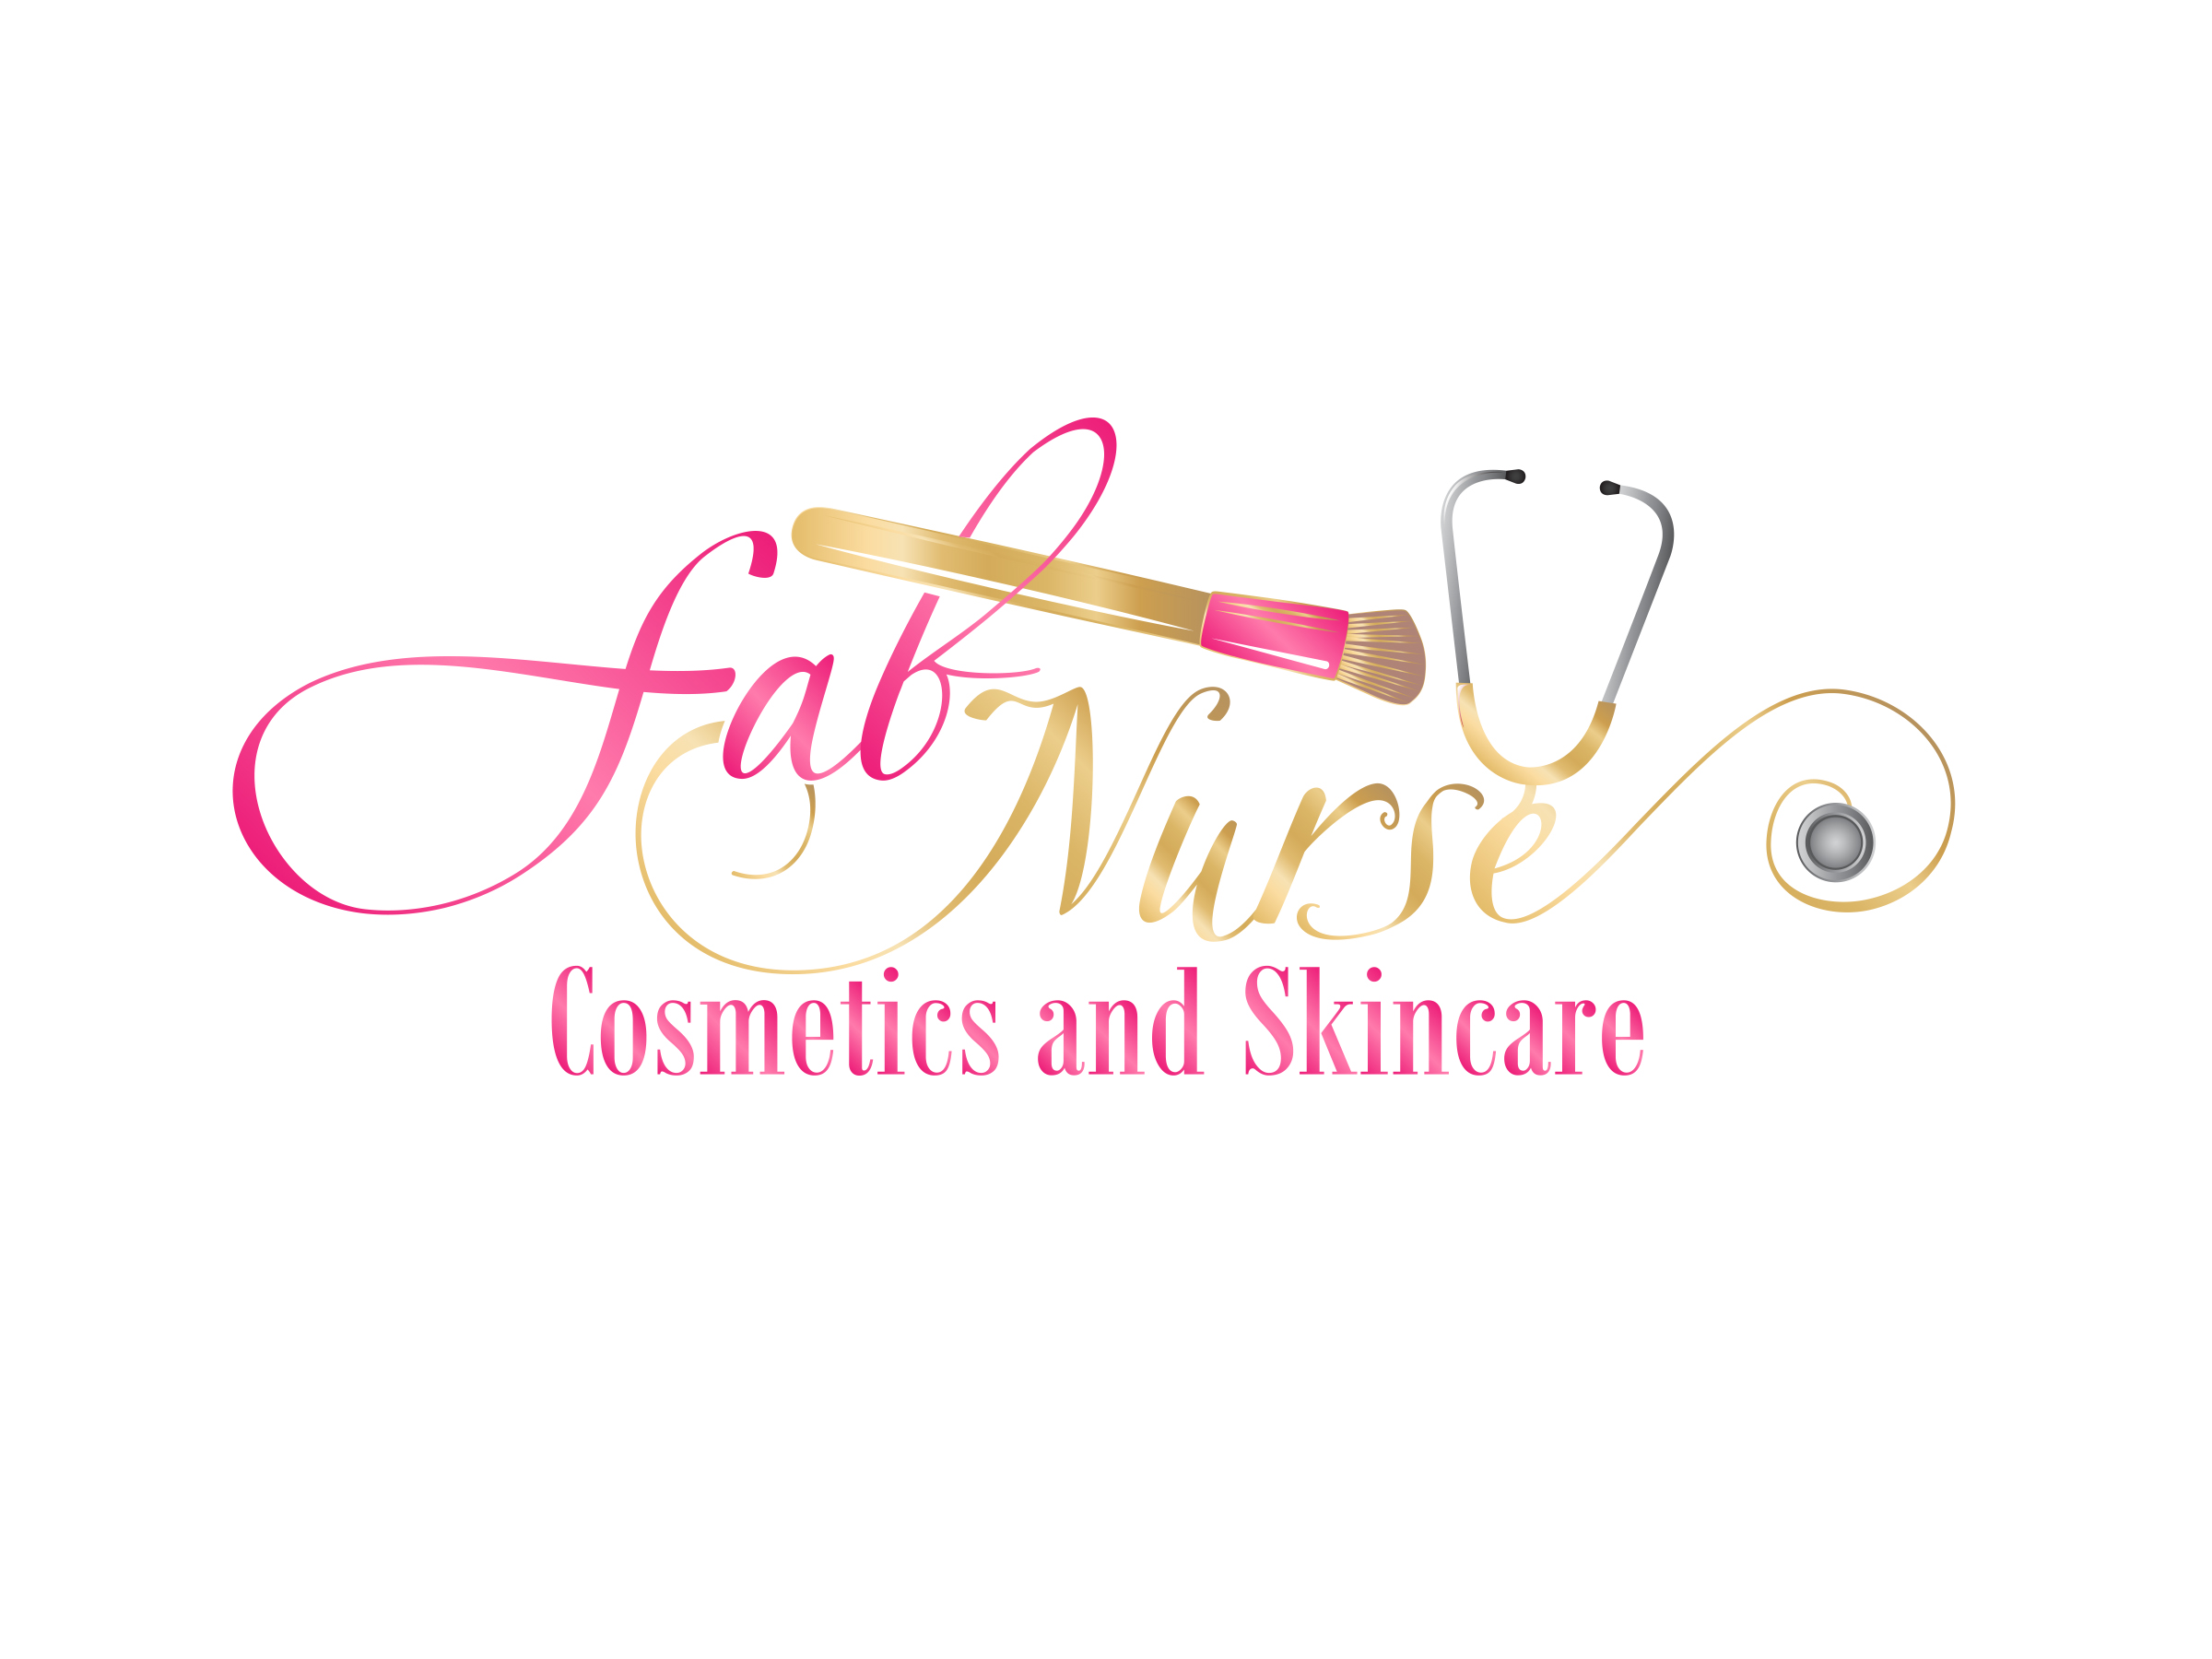 Veteran Nurse Launches Cosmetic And Skincare Line Tailored For Nurses